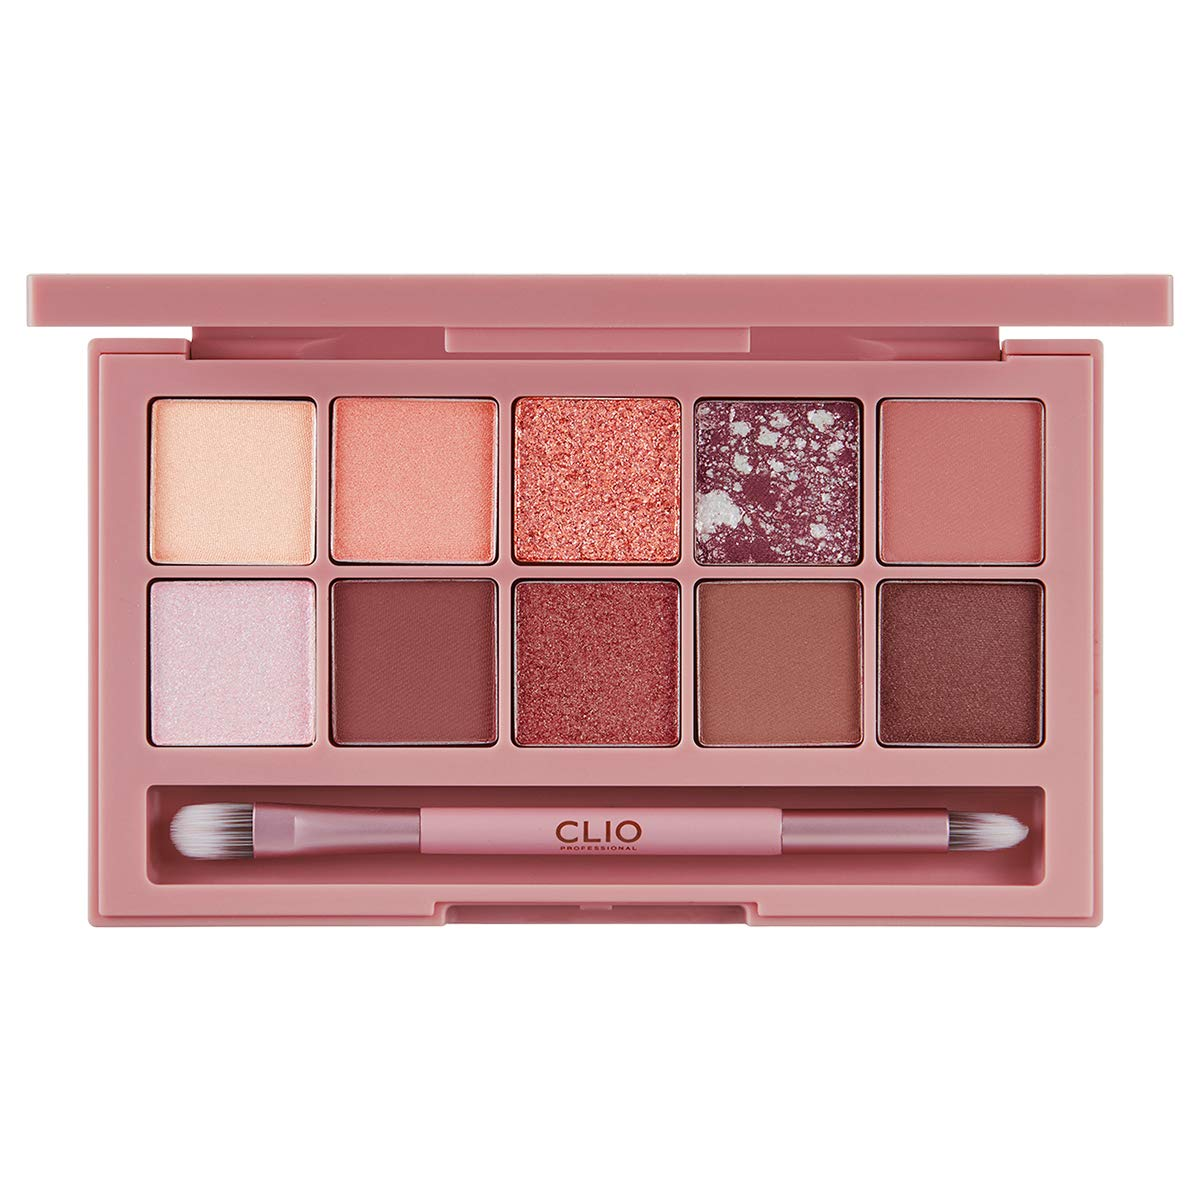 CLIO Pro Eye Shadow Palette | Matte, Shimmer, Glitter, Pearls, Highly Pigments, Long-Wearing | Rusted Rose (#05)